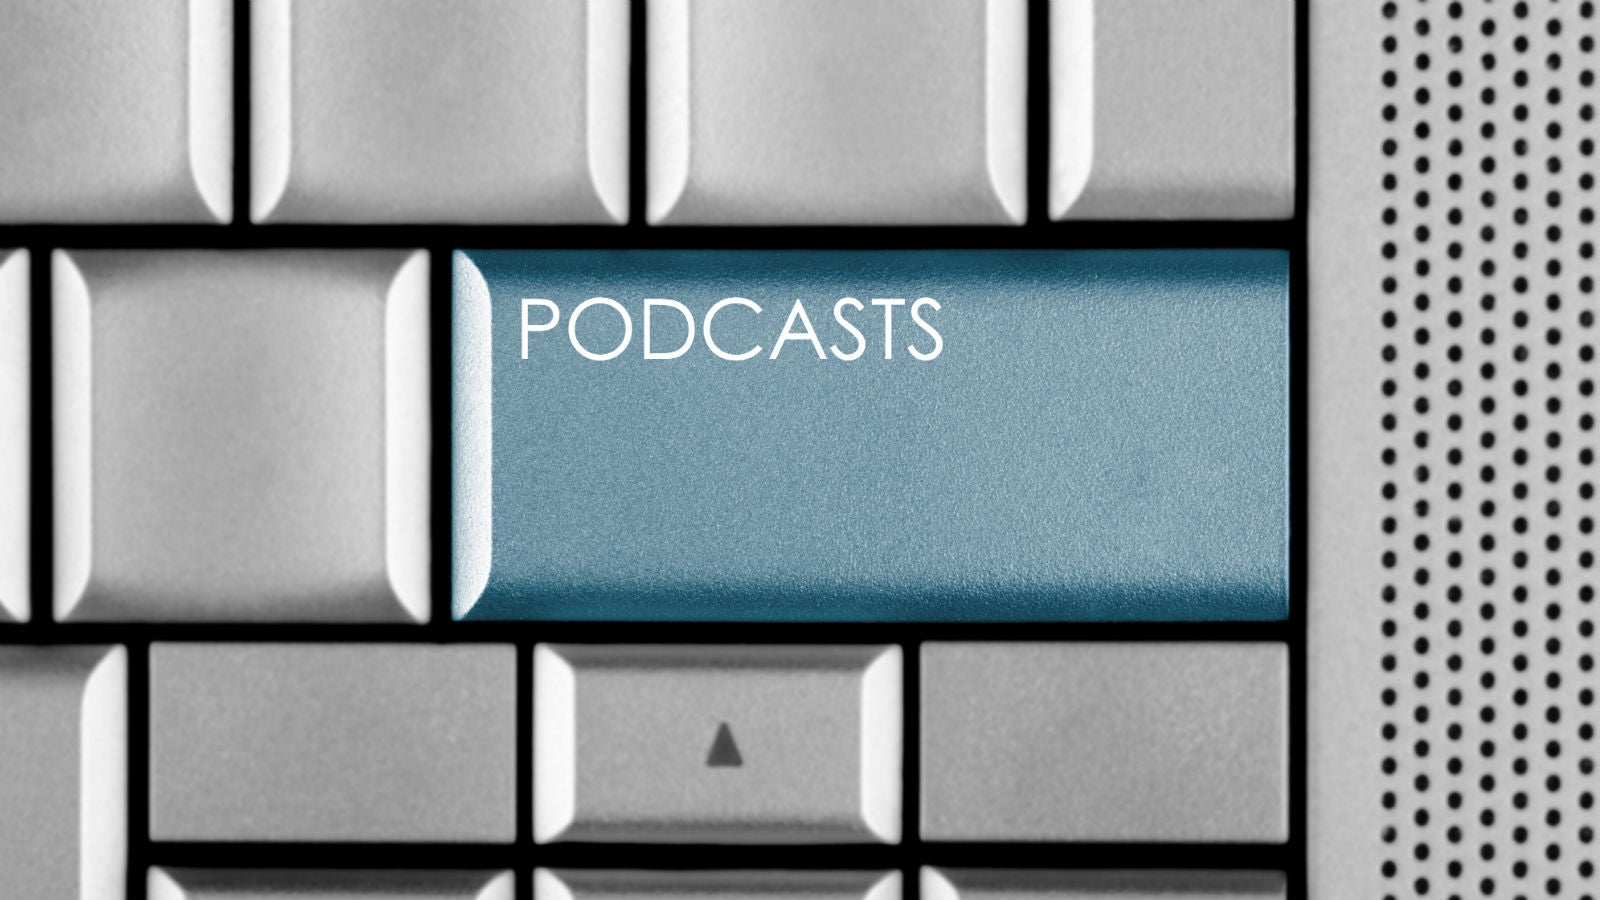 Podcasts: Where To Start, What To Listen To, And How To Do It Yourself